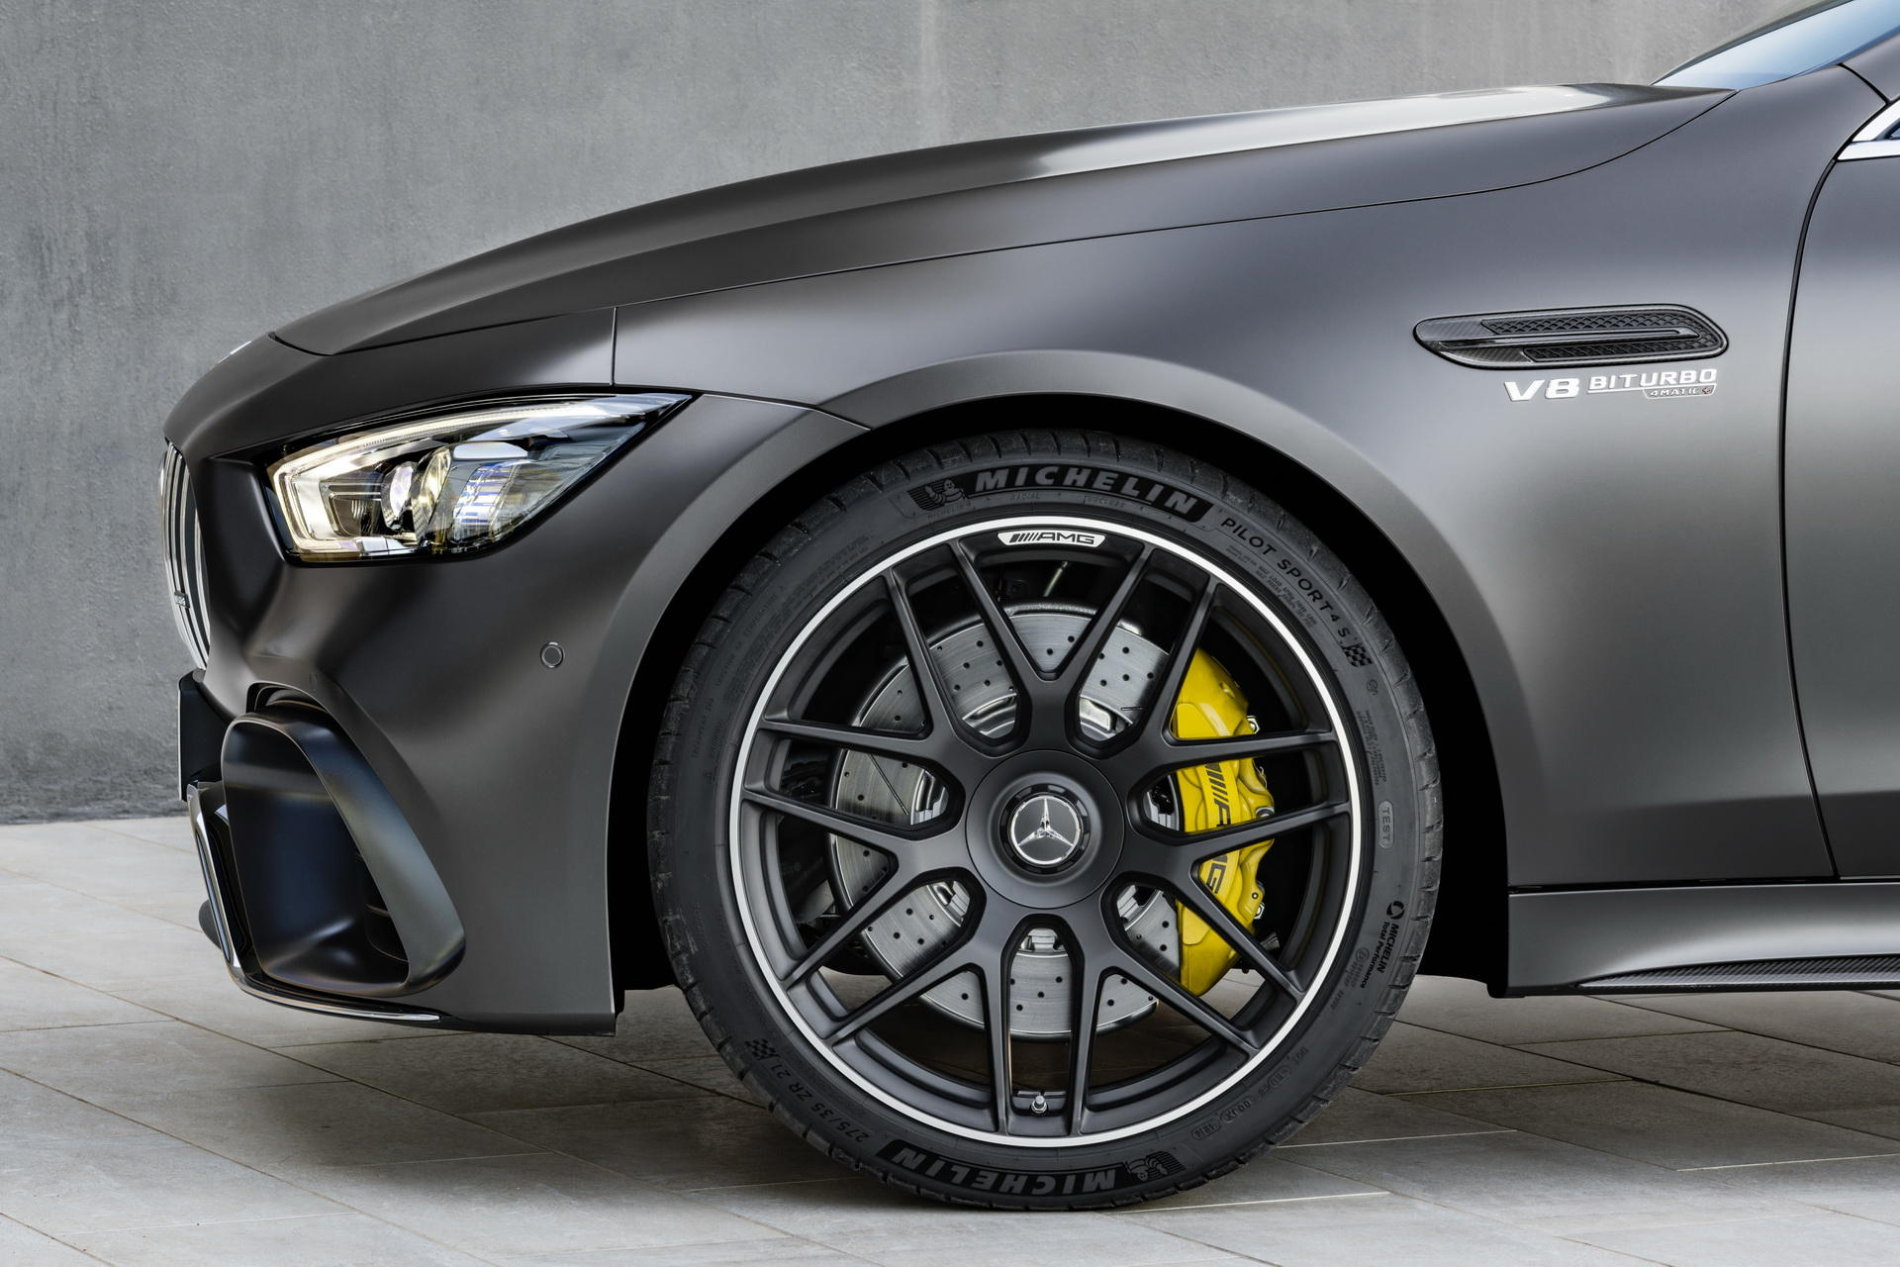 2019 Mercedes-AMG GT 4-Door Coupe - 2019 Mercedes-AMG GT 4-Door Coupe